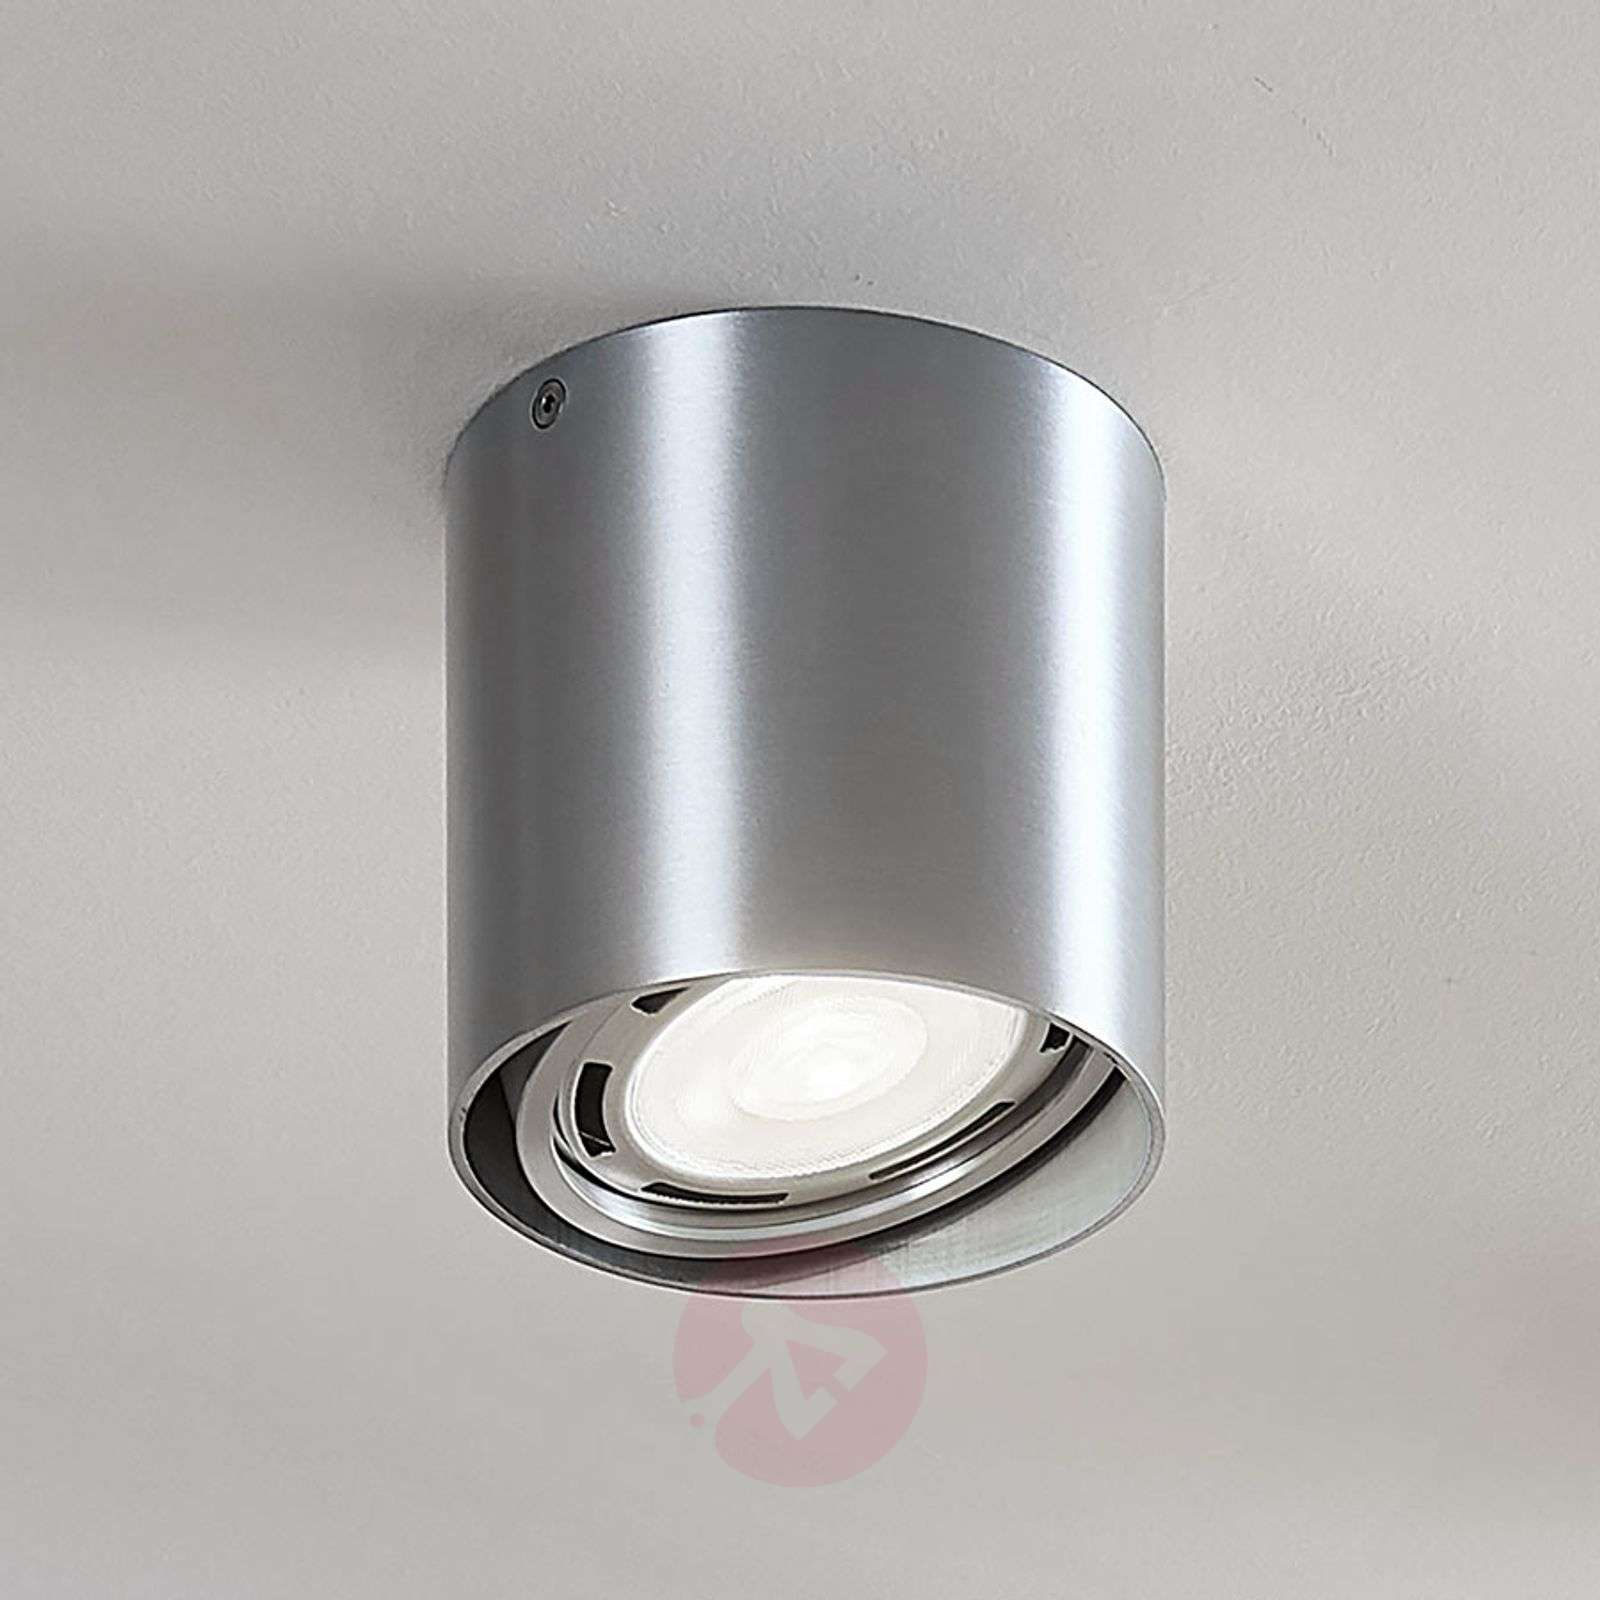 Downlight LED Rosalie, 1-pkt., okrągły, aluminium-9621904-03